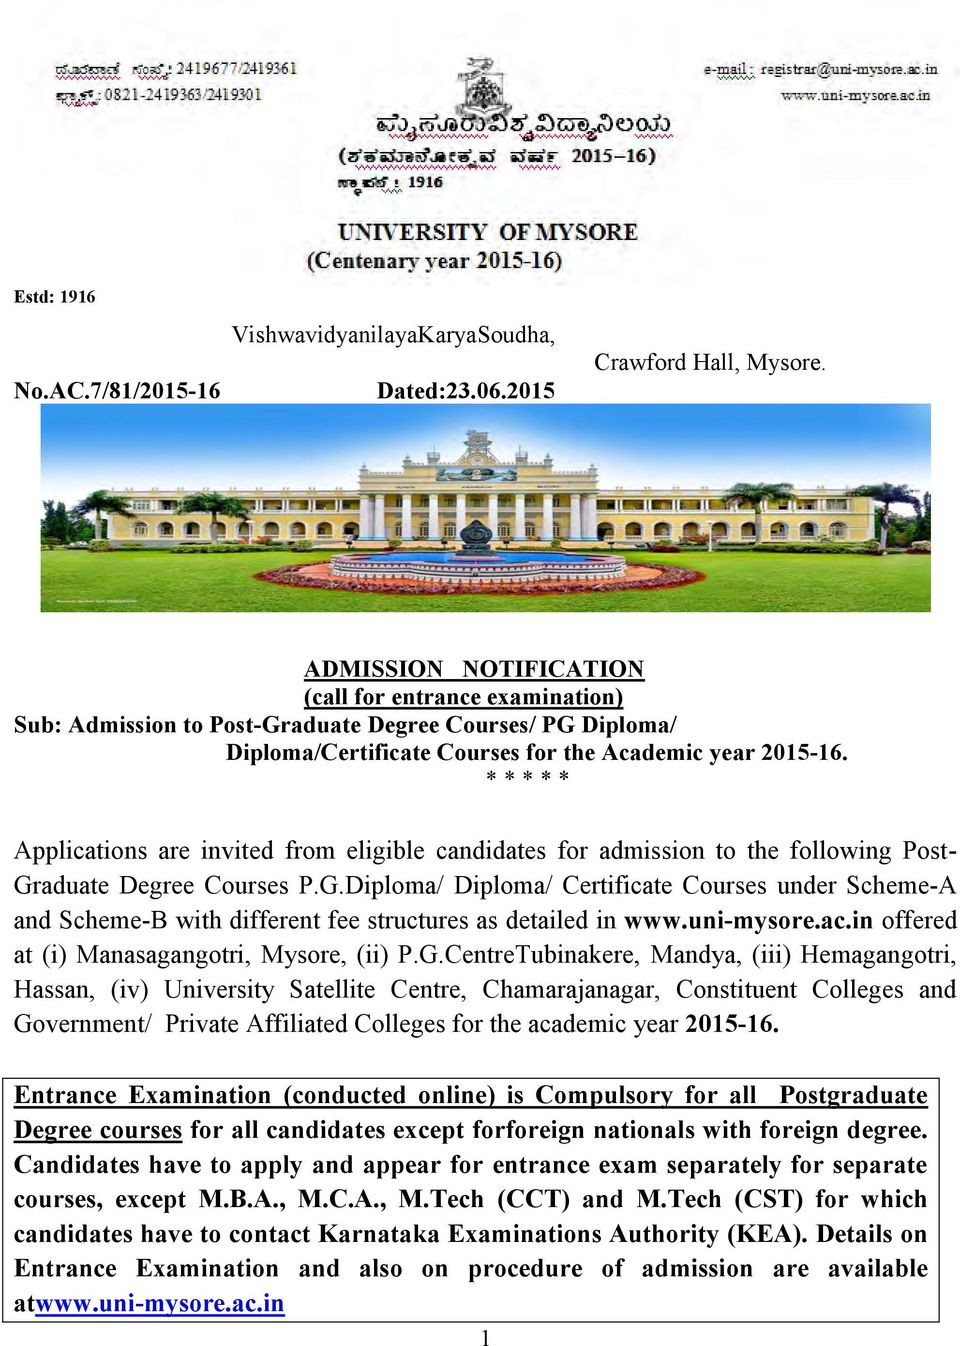 * * * * * Applications are invited from eligible candidates for admission to the following Post- Gr